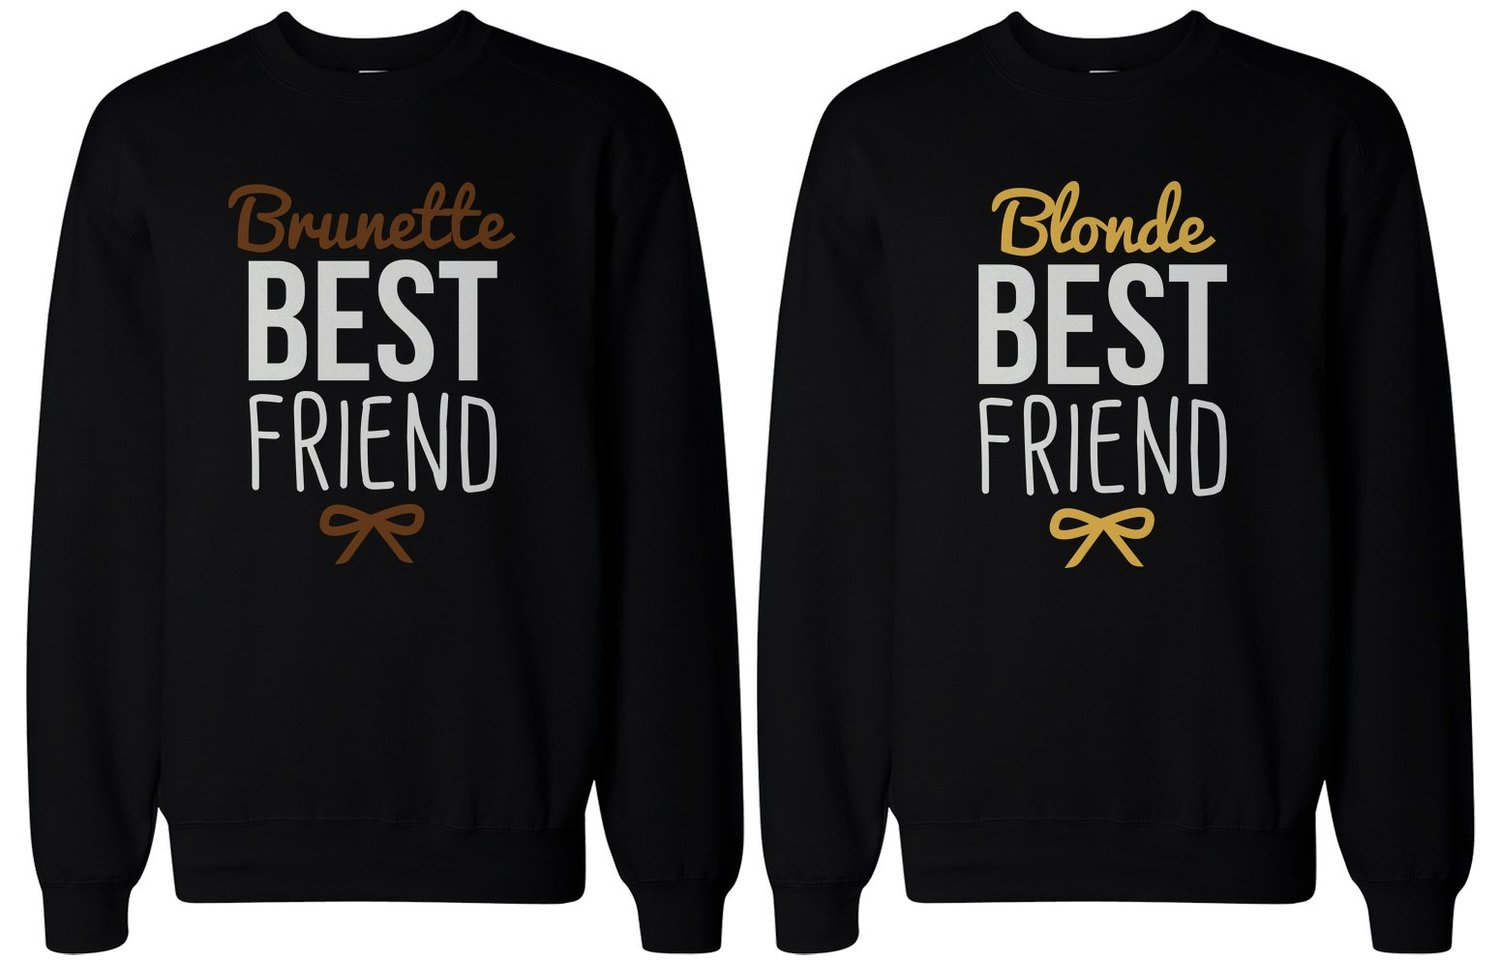 Sweaters and Sweatshirts T-Shirts and Tops Minnie Mouse T-Shirts & Tops. Minnie Mouse T-Shirts & Tops Take a peek at what's chic. T-Shirts starring fashion icon, Minnie Mouse. Mickey Mouse and Friends Hawaiian Shirt for Men. Mickey Mouse and Friends Hawaiian Shirt for Men. $